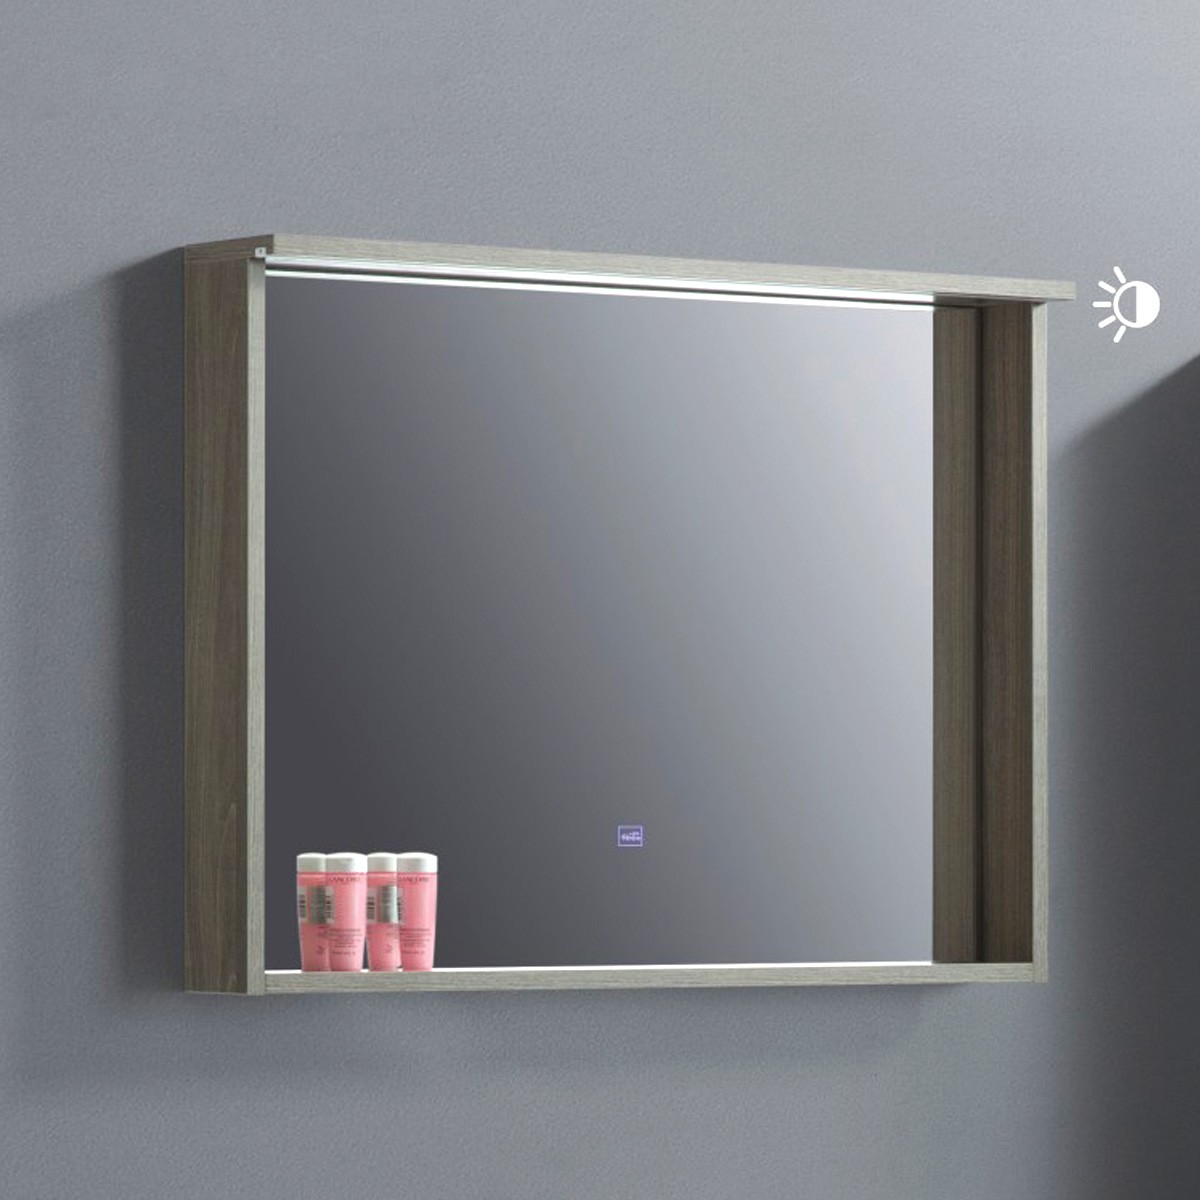 32 x 24 In. Bathroom Vanity LED Mirror with Shelf (VSW8001-M)